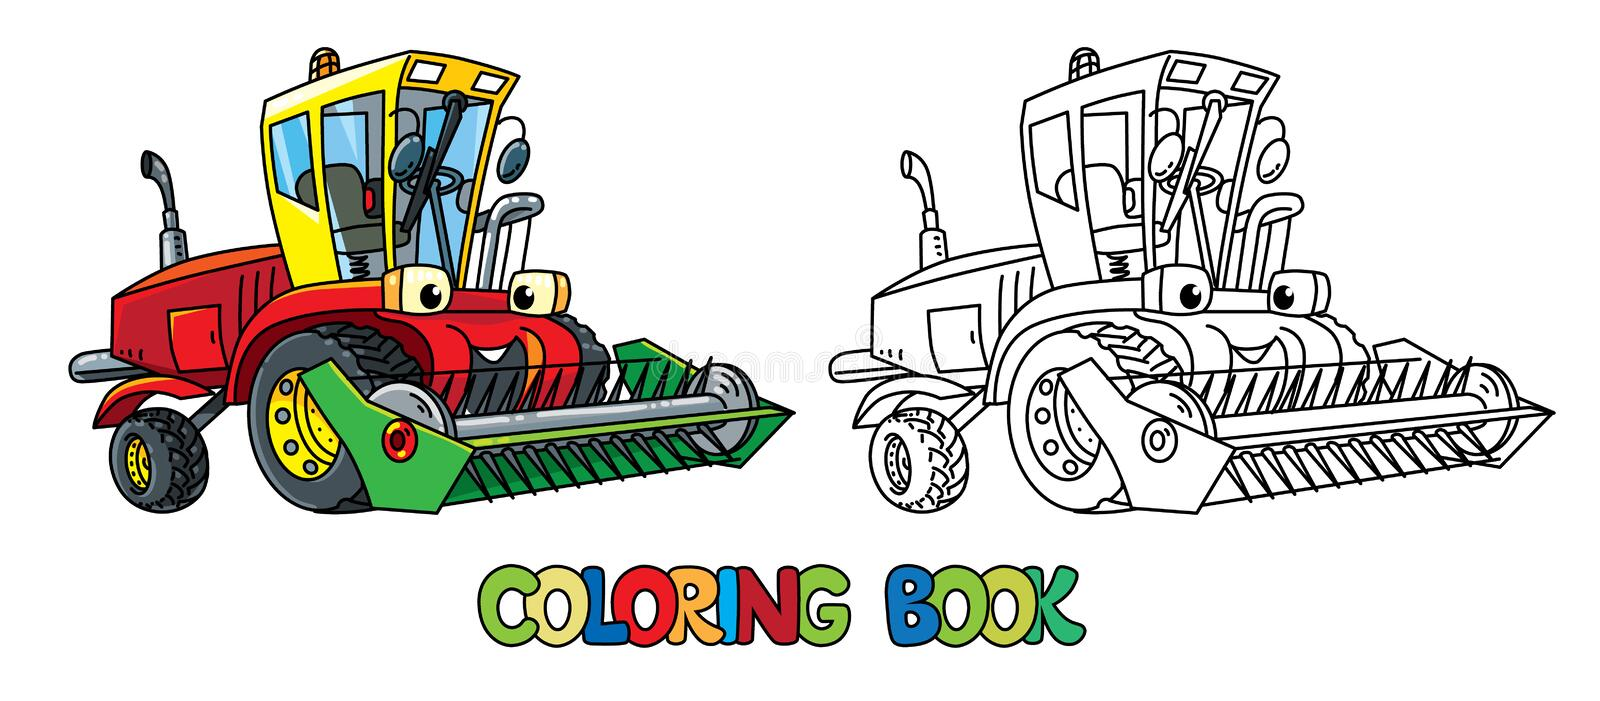 Combine or lawn mower with eyes coloring book. Combine harvester or lawn mower coloring book for kids. Small funny vector cute car with eyes and mouth. Children royalty free illustration